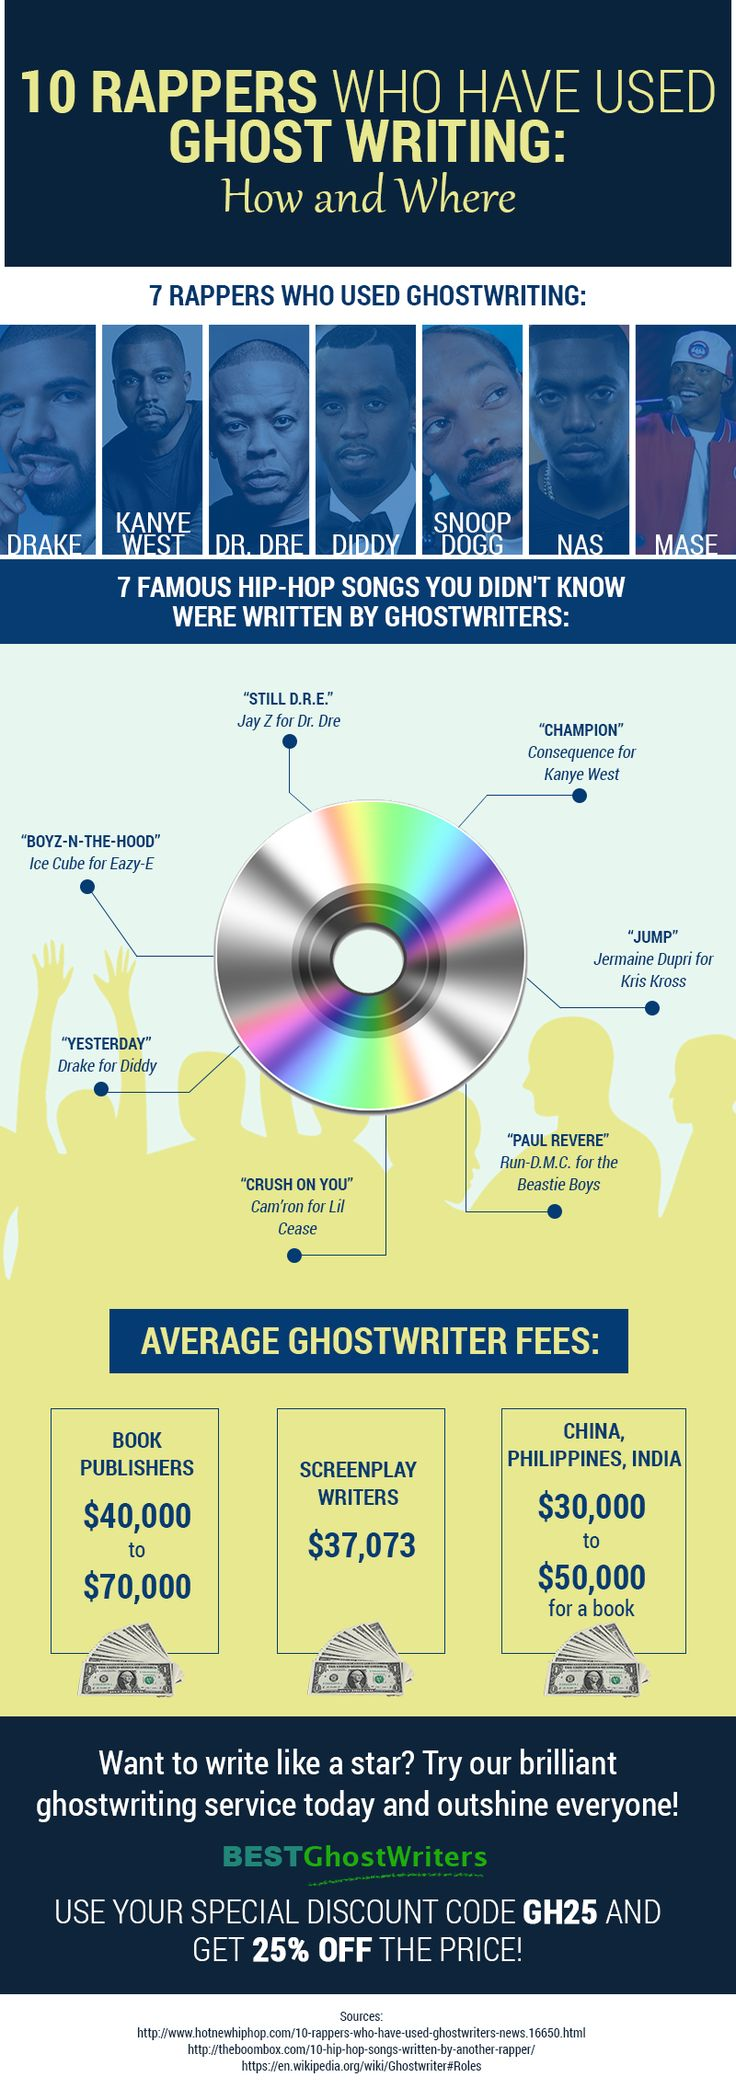 http://www.bestghostwriters.net This informative list will show you rappers who used ghostwriting to let you see what ghostwriter can do for you